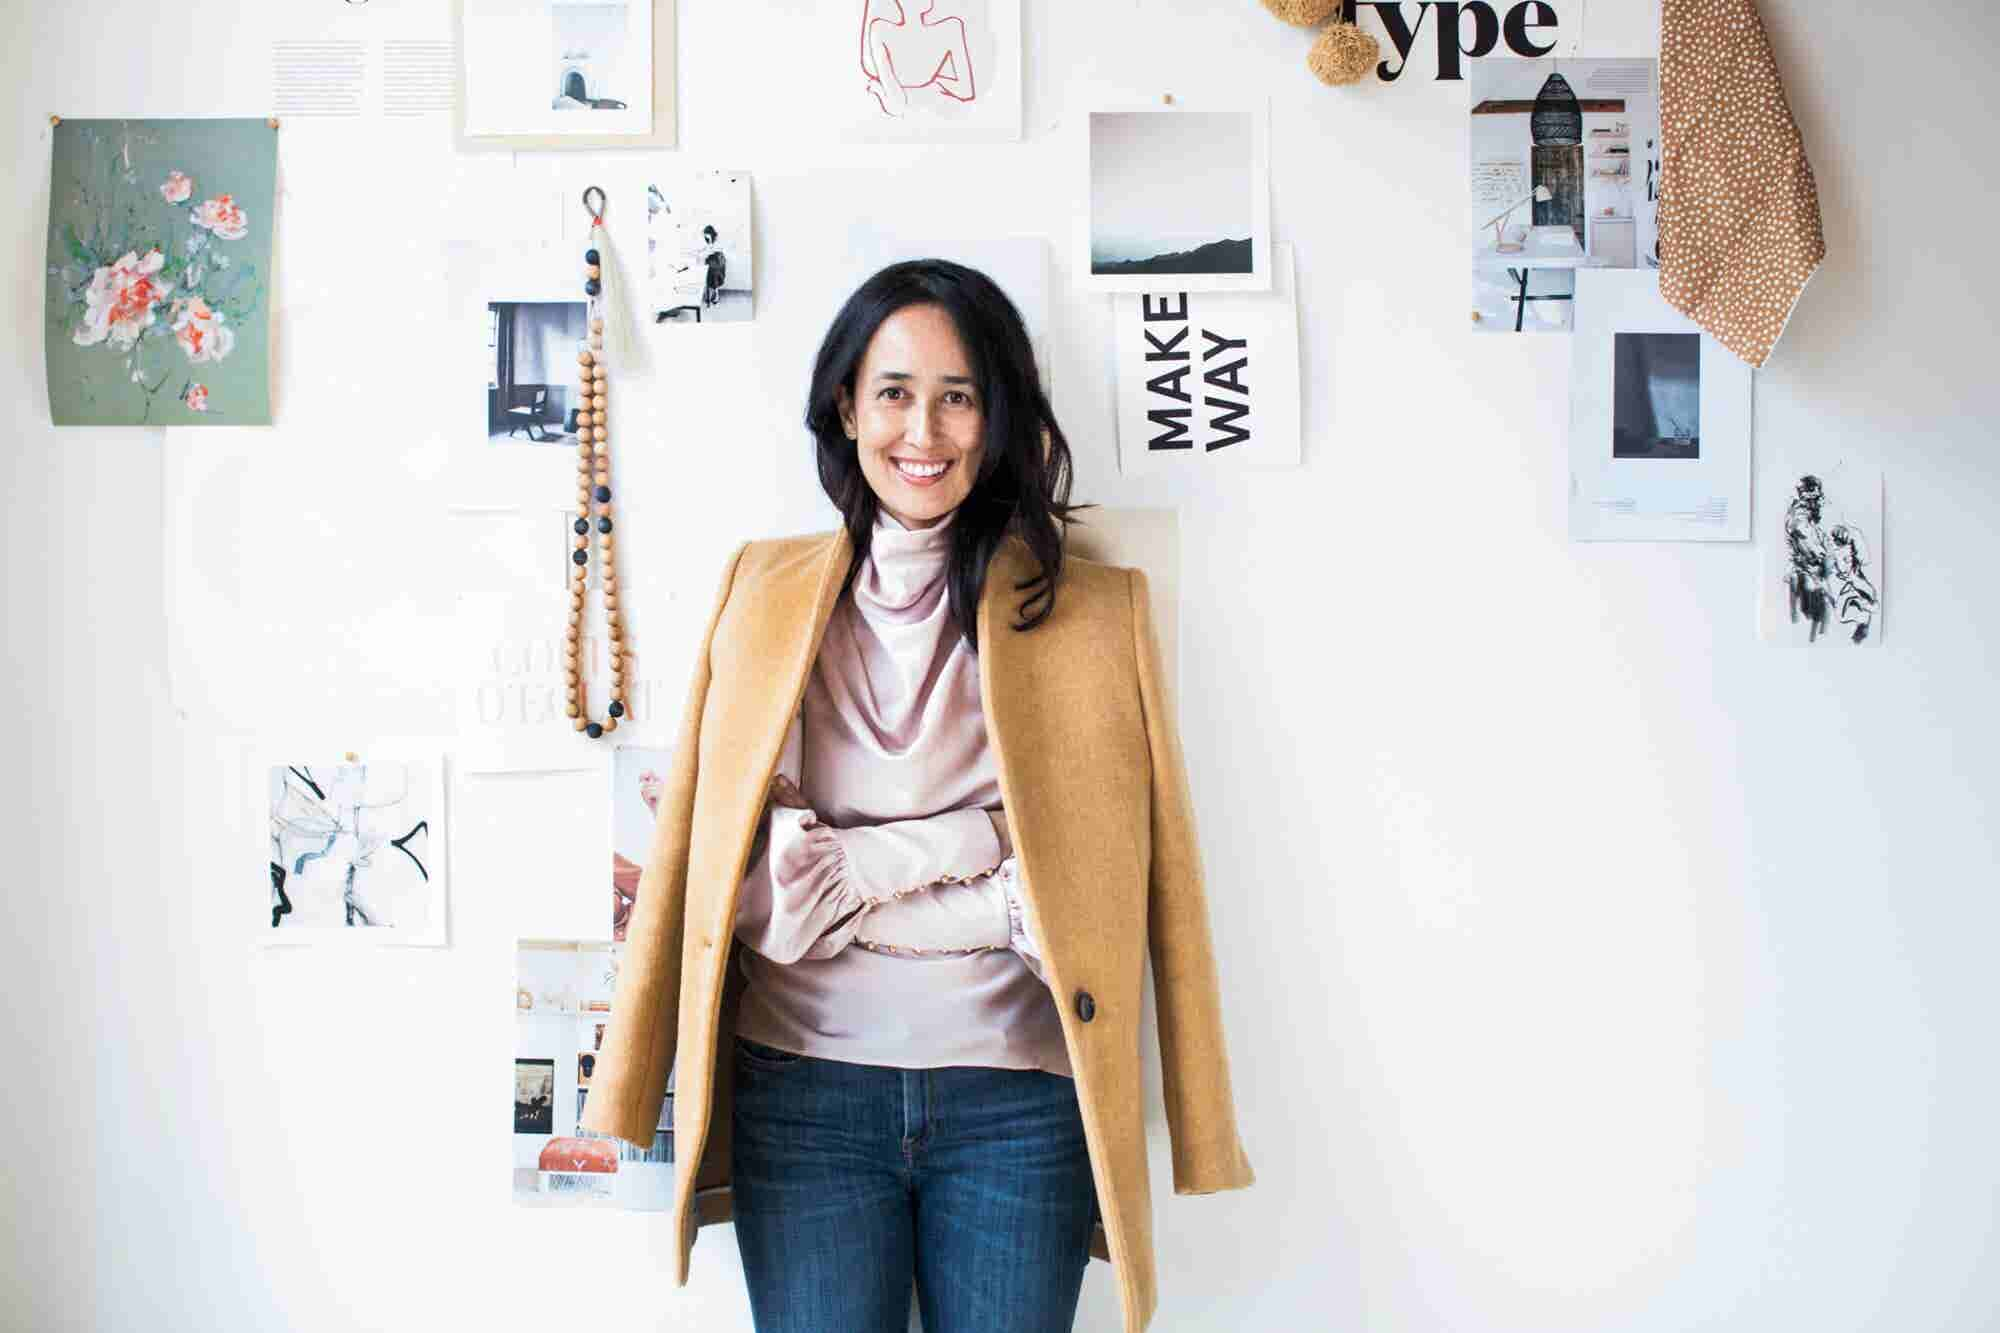 Minted Grew From a Stationery Brand to a Global Design Platform. Here's How.